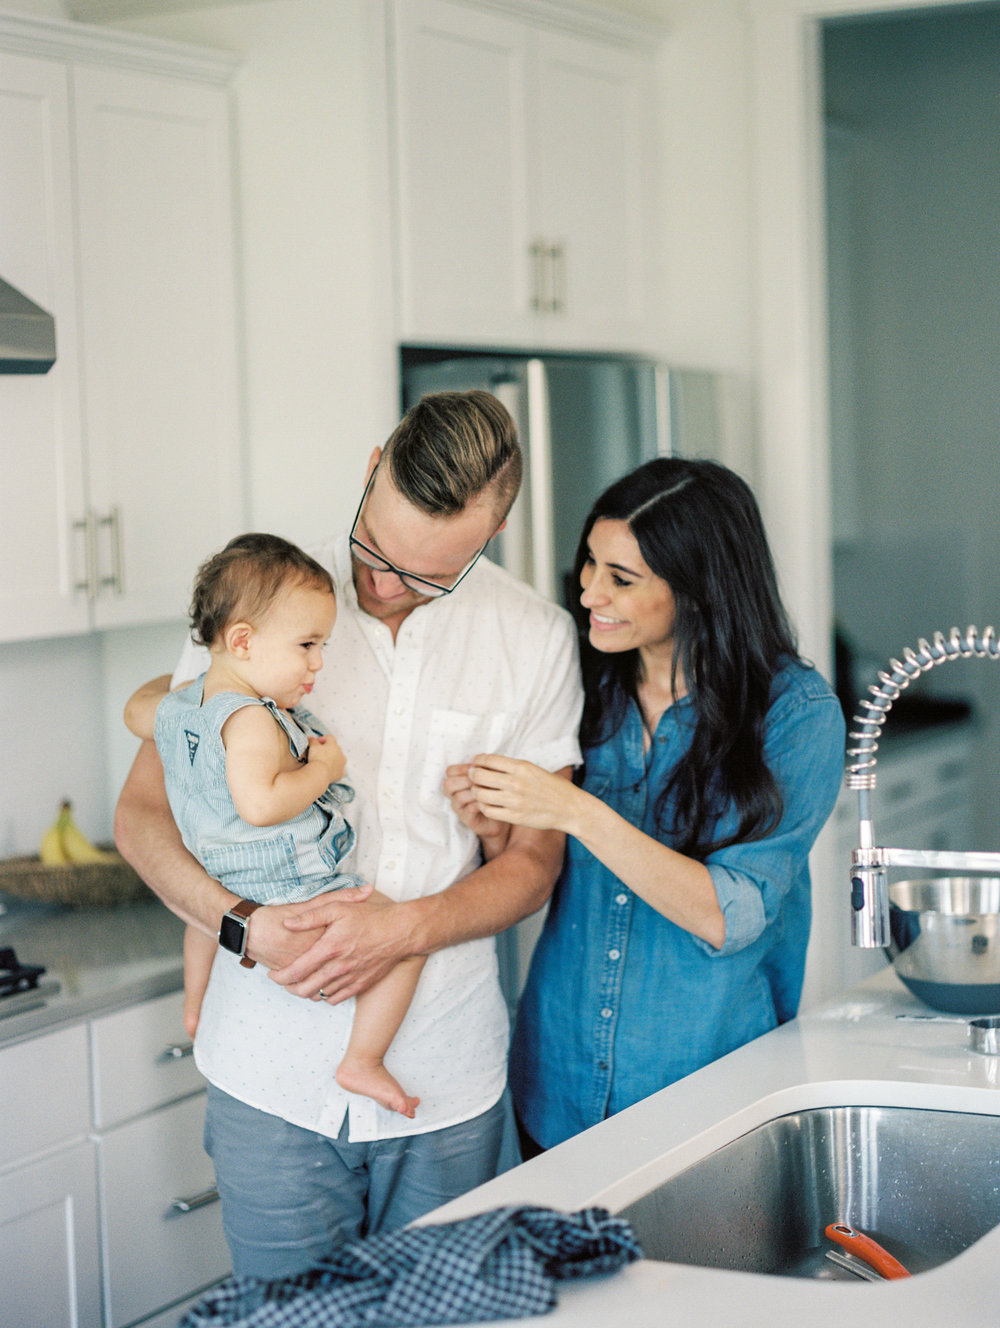 Lynchburg_DC_family_wedding_film_photographer_white_kitchen_baby_announcement-28.jpg